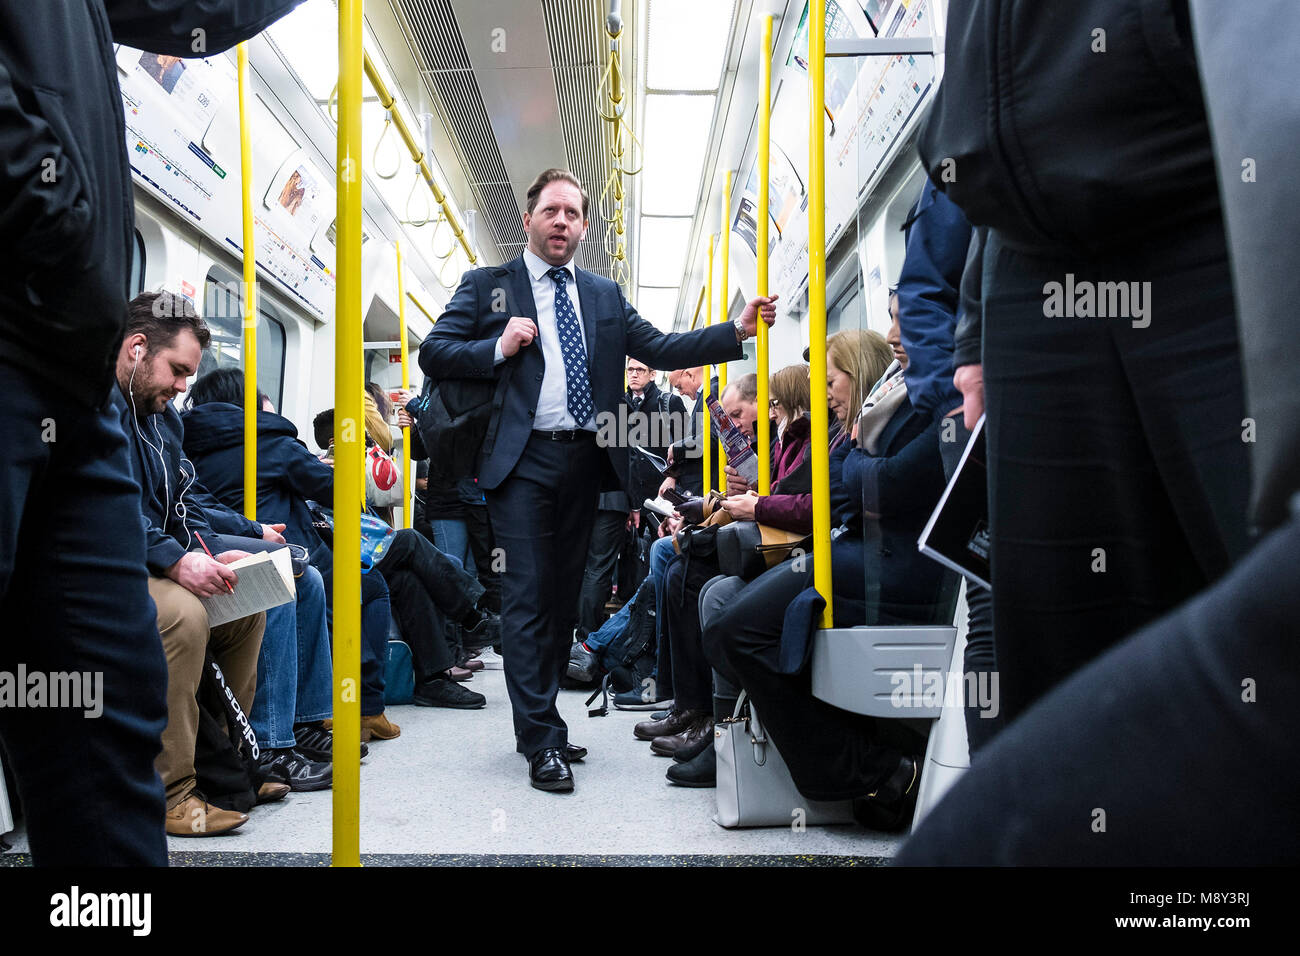 Les navetteurs sur un train de tube. Photo Stock